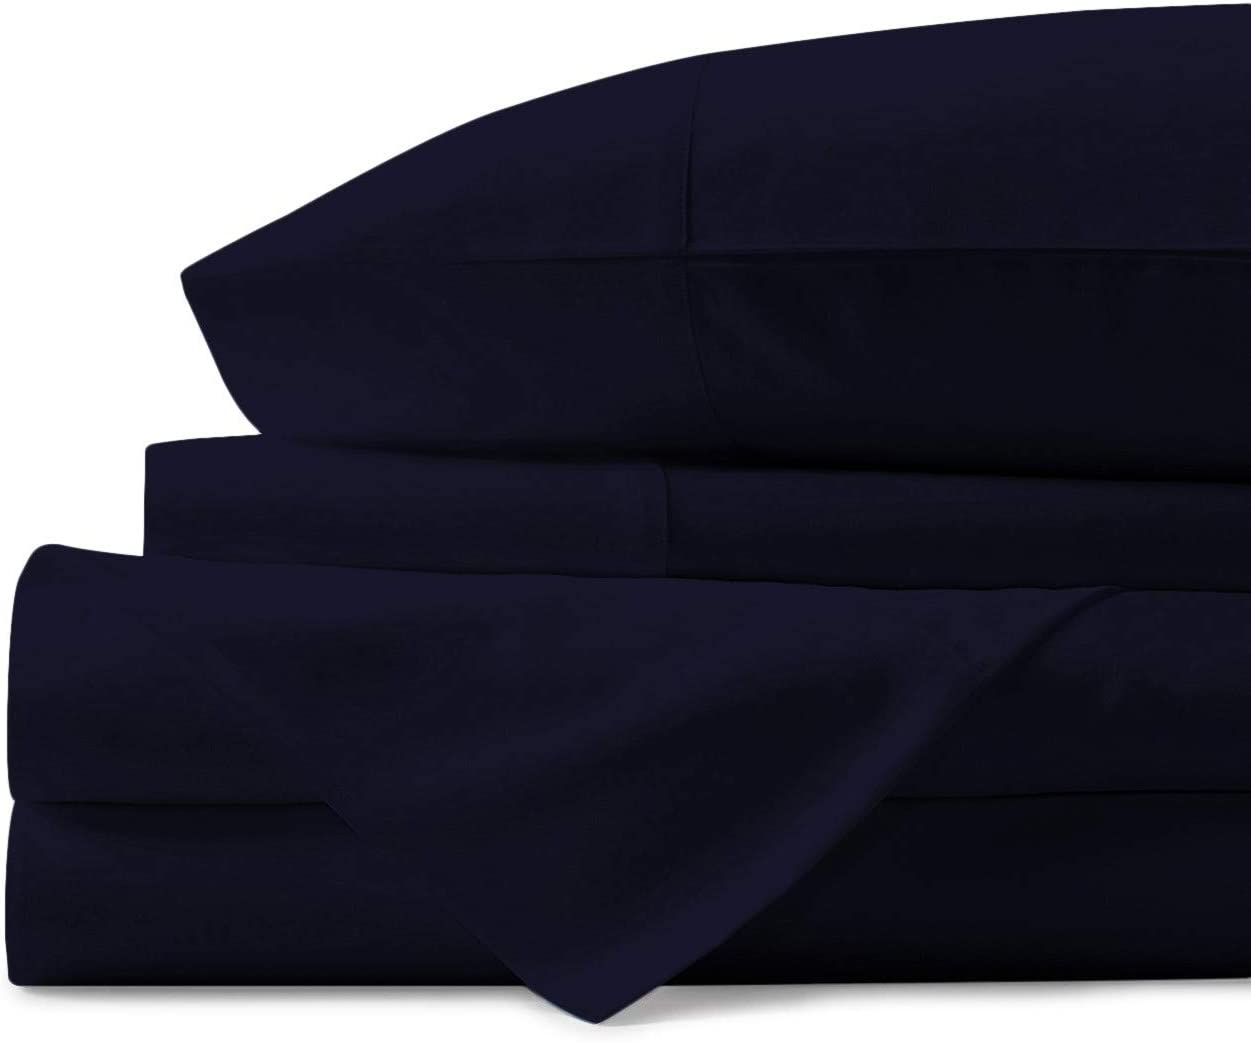 Mayfair Linen 100% Egyptian Cotton Sheets, Navy Blue Twin Sheets Set, 600 Thread Count Long Staple Cotton, Sateen Weave for Soft and Silky Feel, Fits Mattress Upto 18'' DEEP Pocket